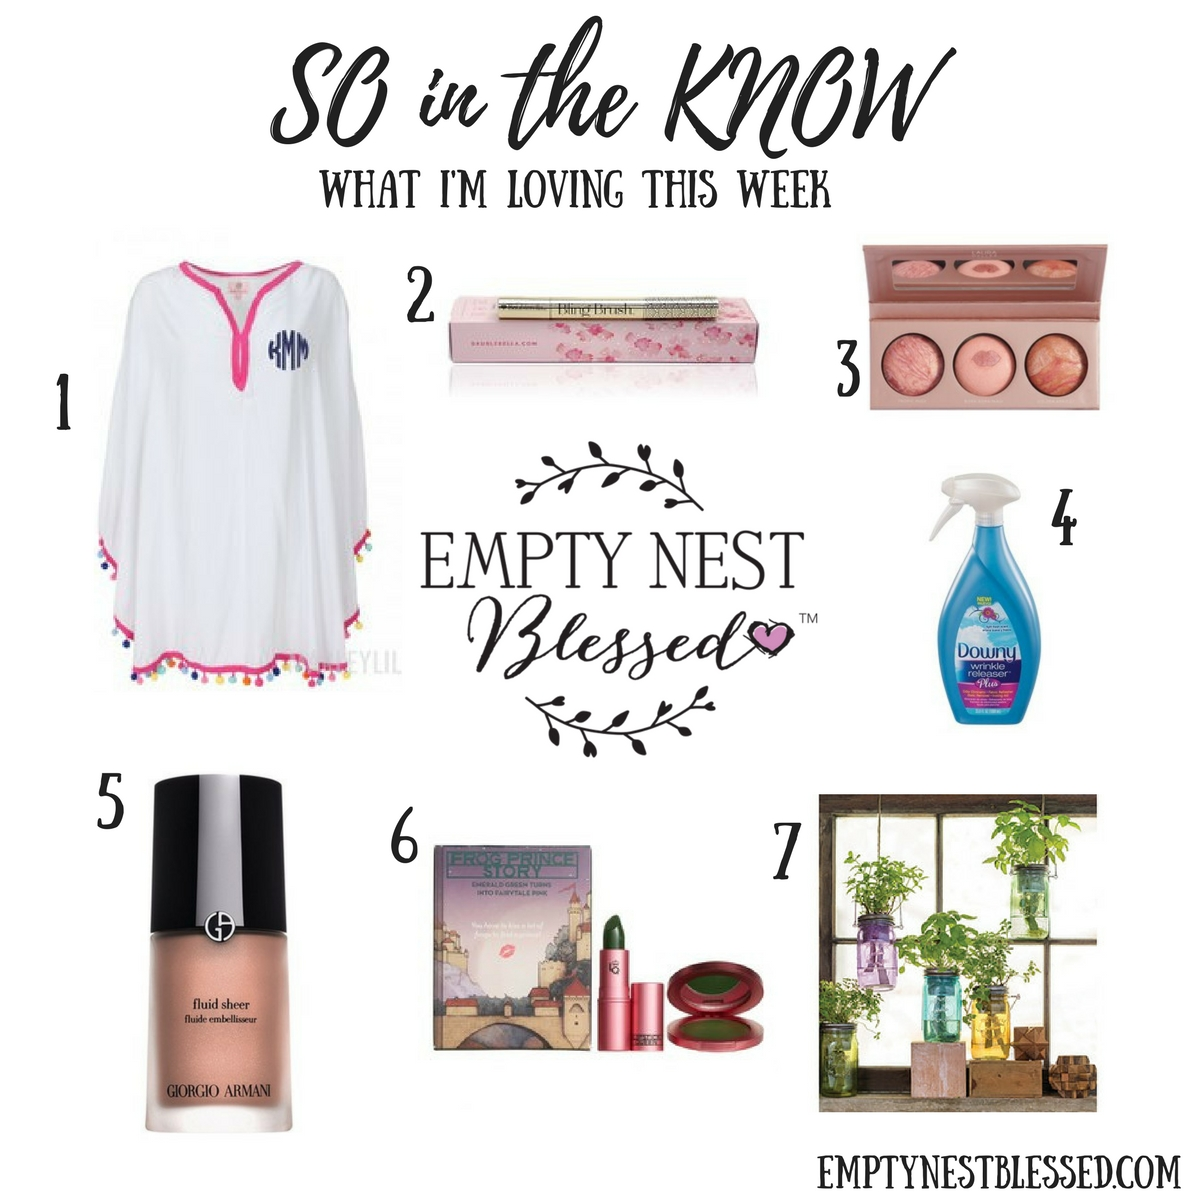 growing in the empty nest, Pom pom cover up, bling brush, downy wrinkle releaser, laura geller baked blush trio, Armani fluide sheer, color changing lipstick, frog lipstick, indoor herb garden, mason jar herb garden